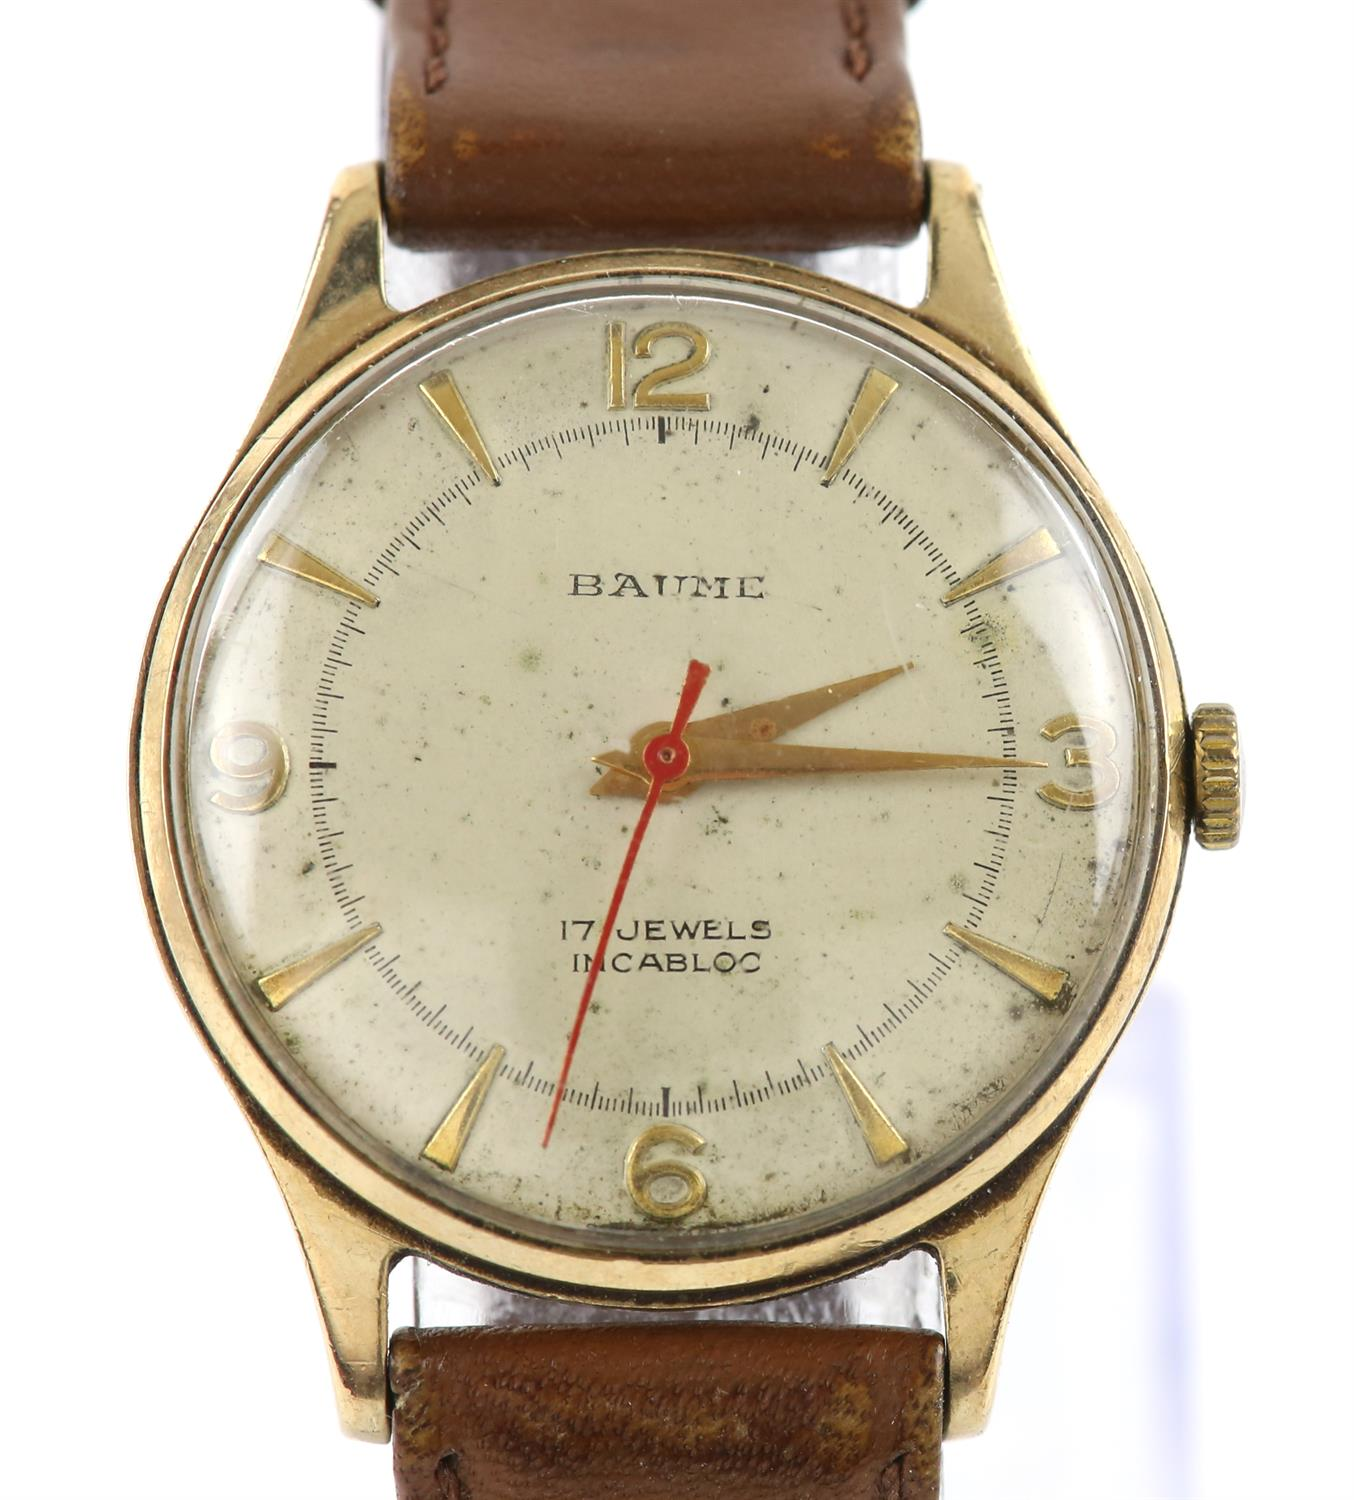 Baume gentleman's gold wristwatch, signed dial with baton and Arabic numeral hour markers